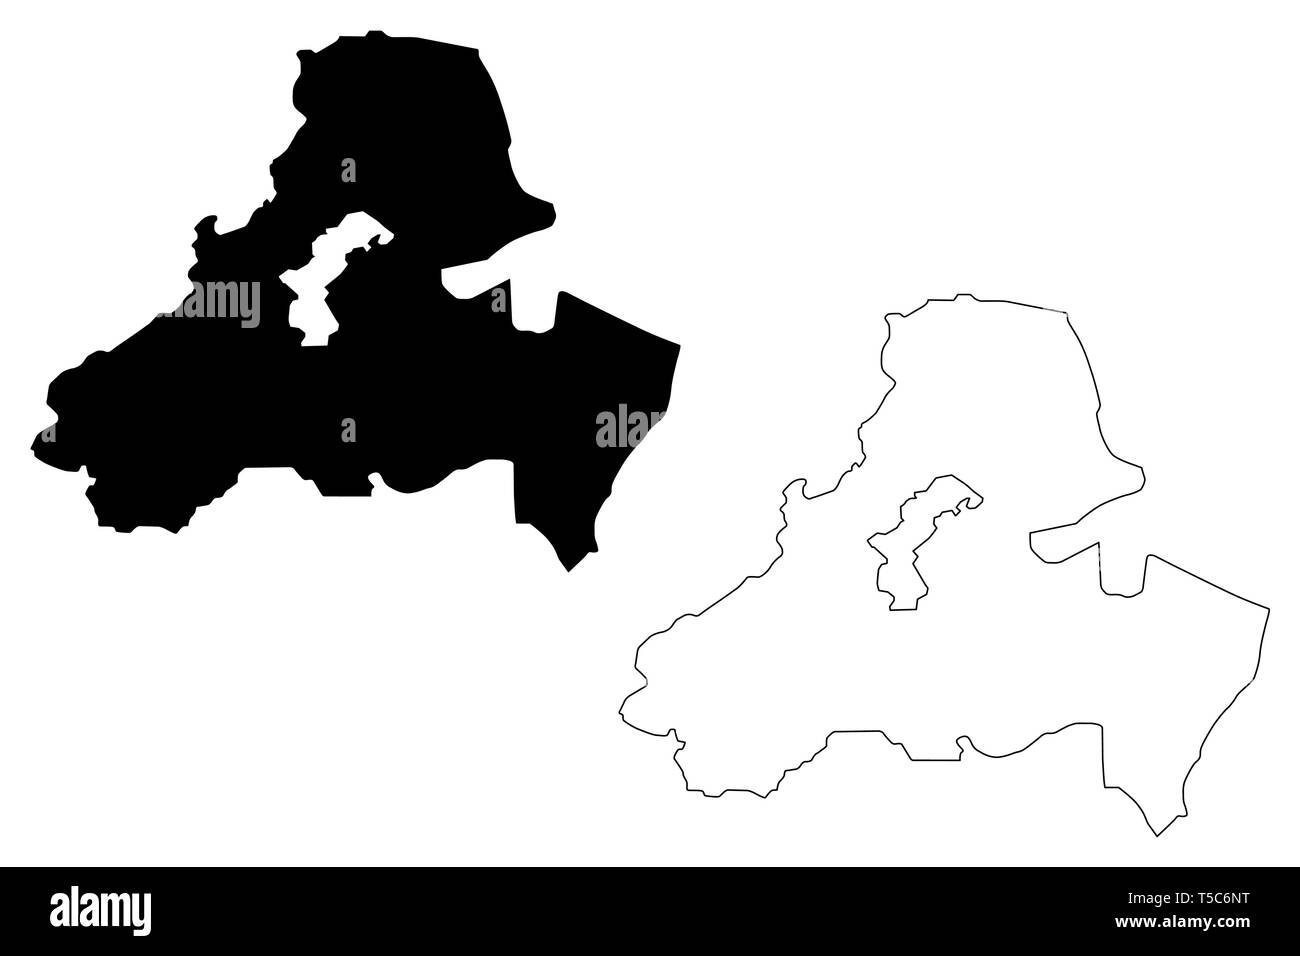 Sanaa Governorate (Governorates of Yemen, Republic of Yemen) map vector illustration, scribble sketch Sana'a  or Sana map - Stock Vector